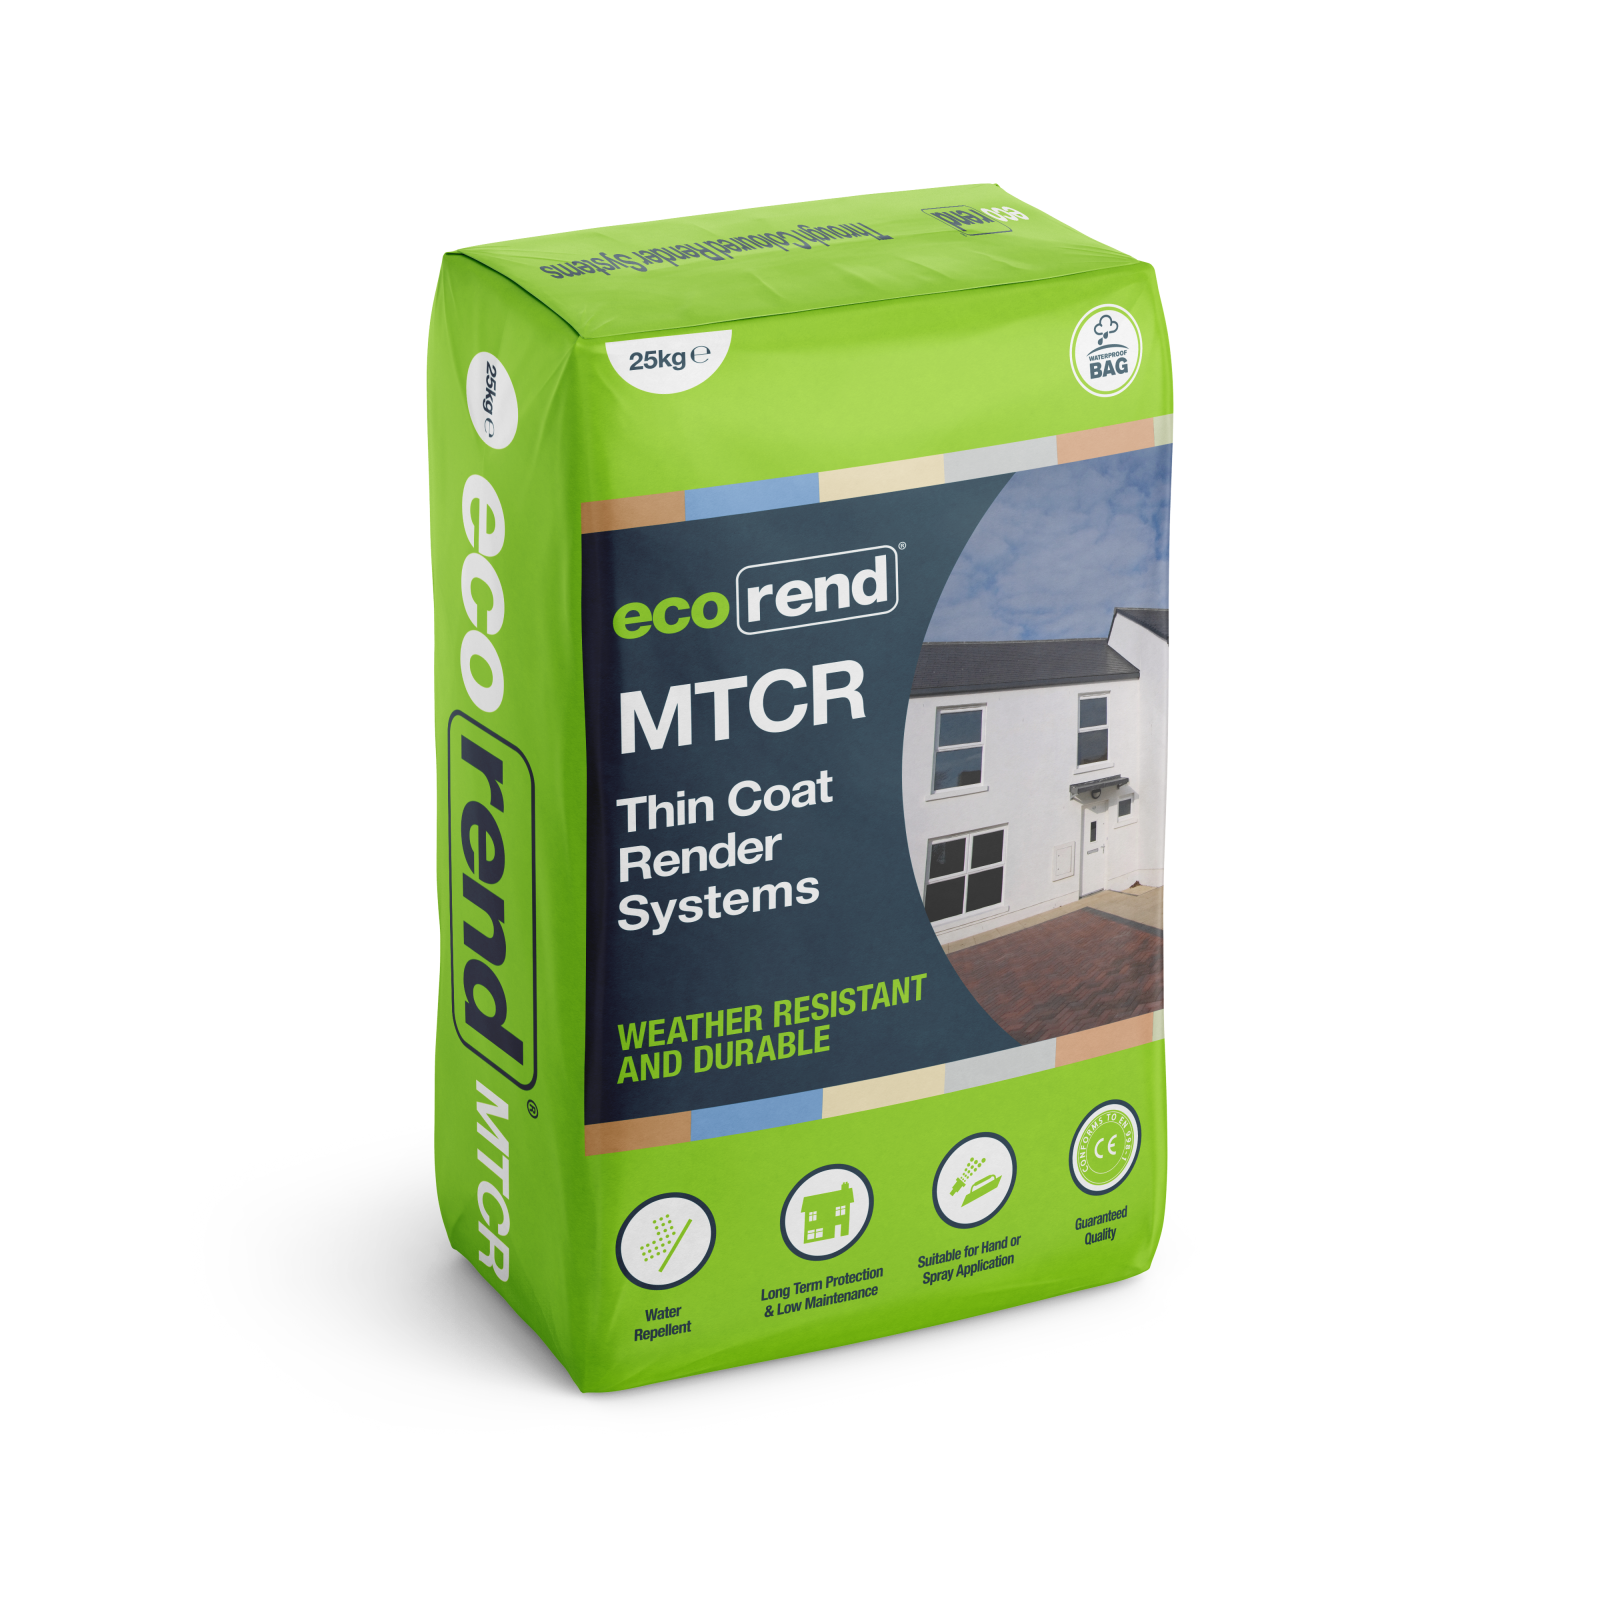 MTCR Thin Coat Render Systems